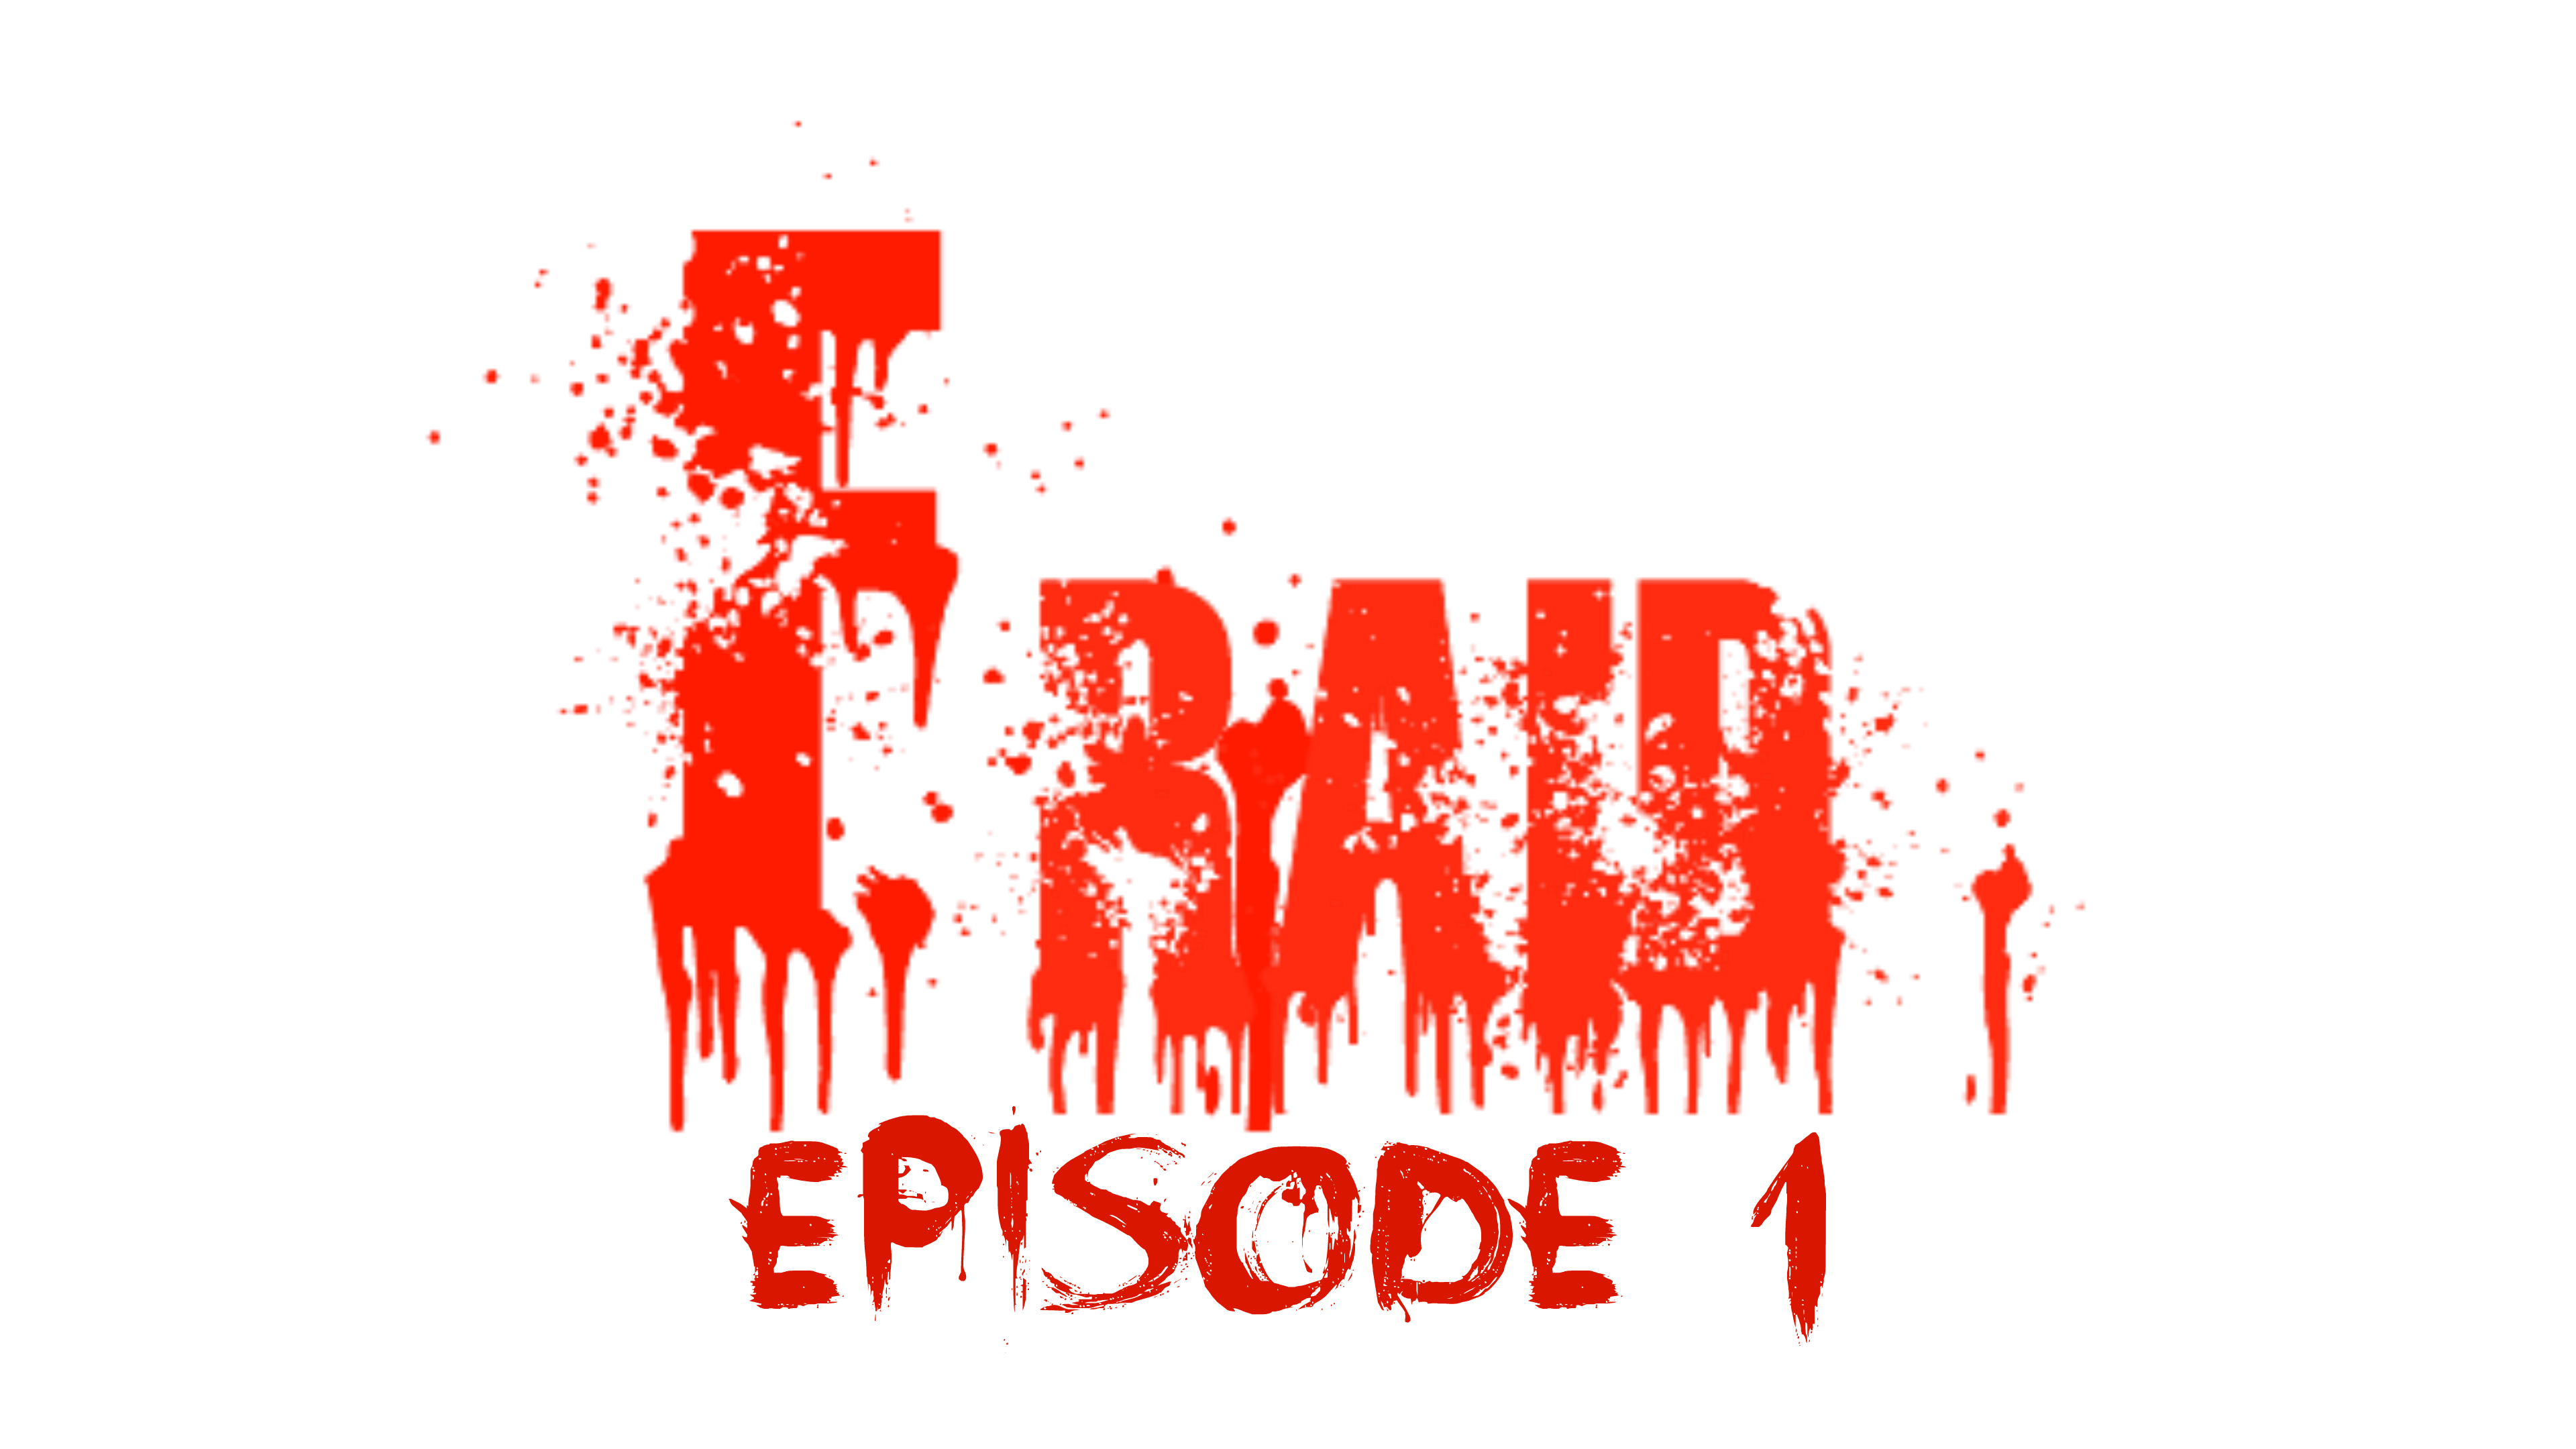 FRAID: Episode 1